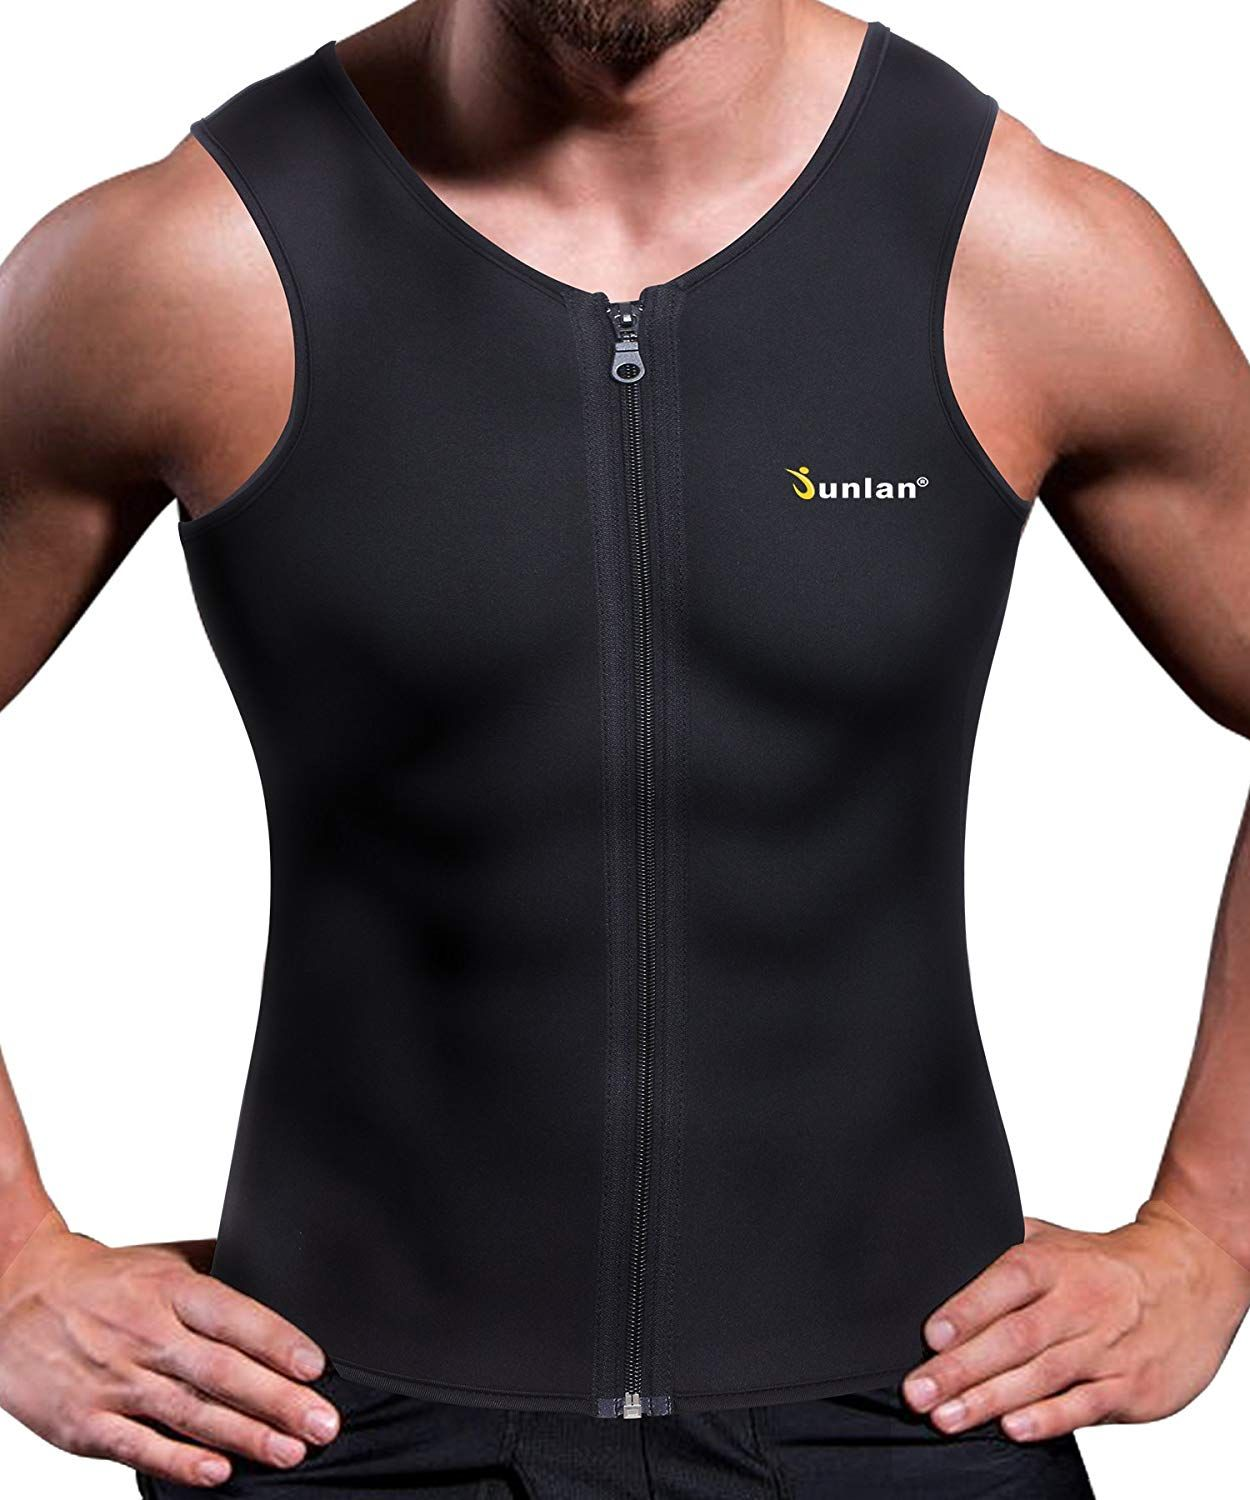 8dded461f05 Amazon.com   Junlan Men Weight Loss Shirt Workout Neoprene Top Training  Body Shaper Clothes